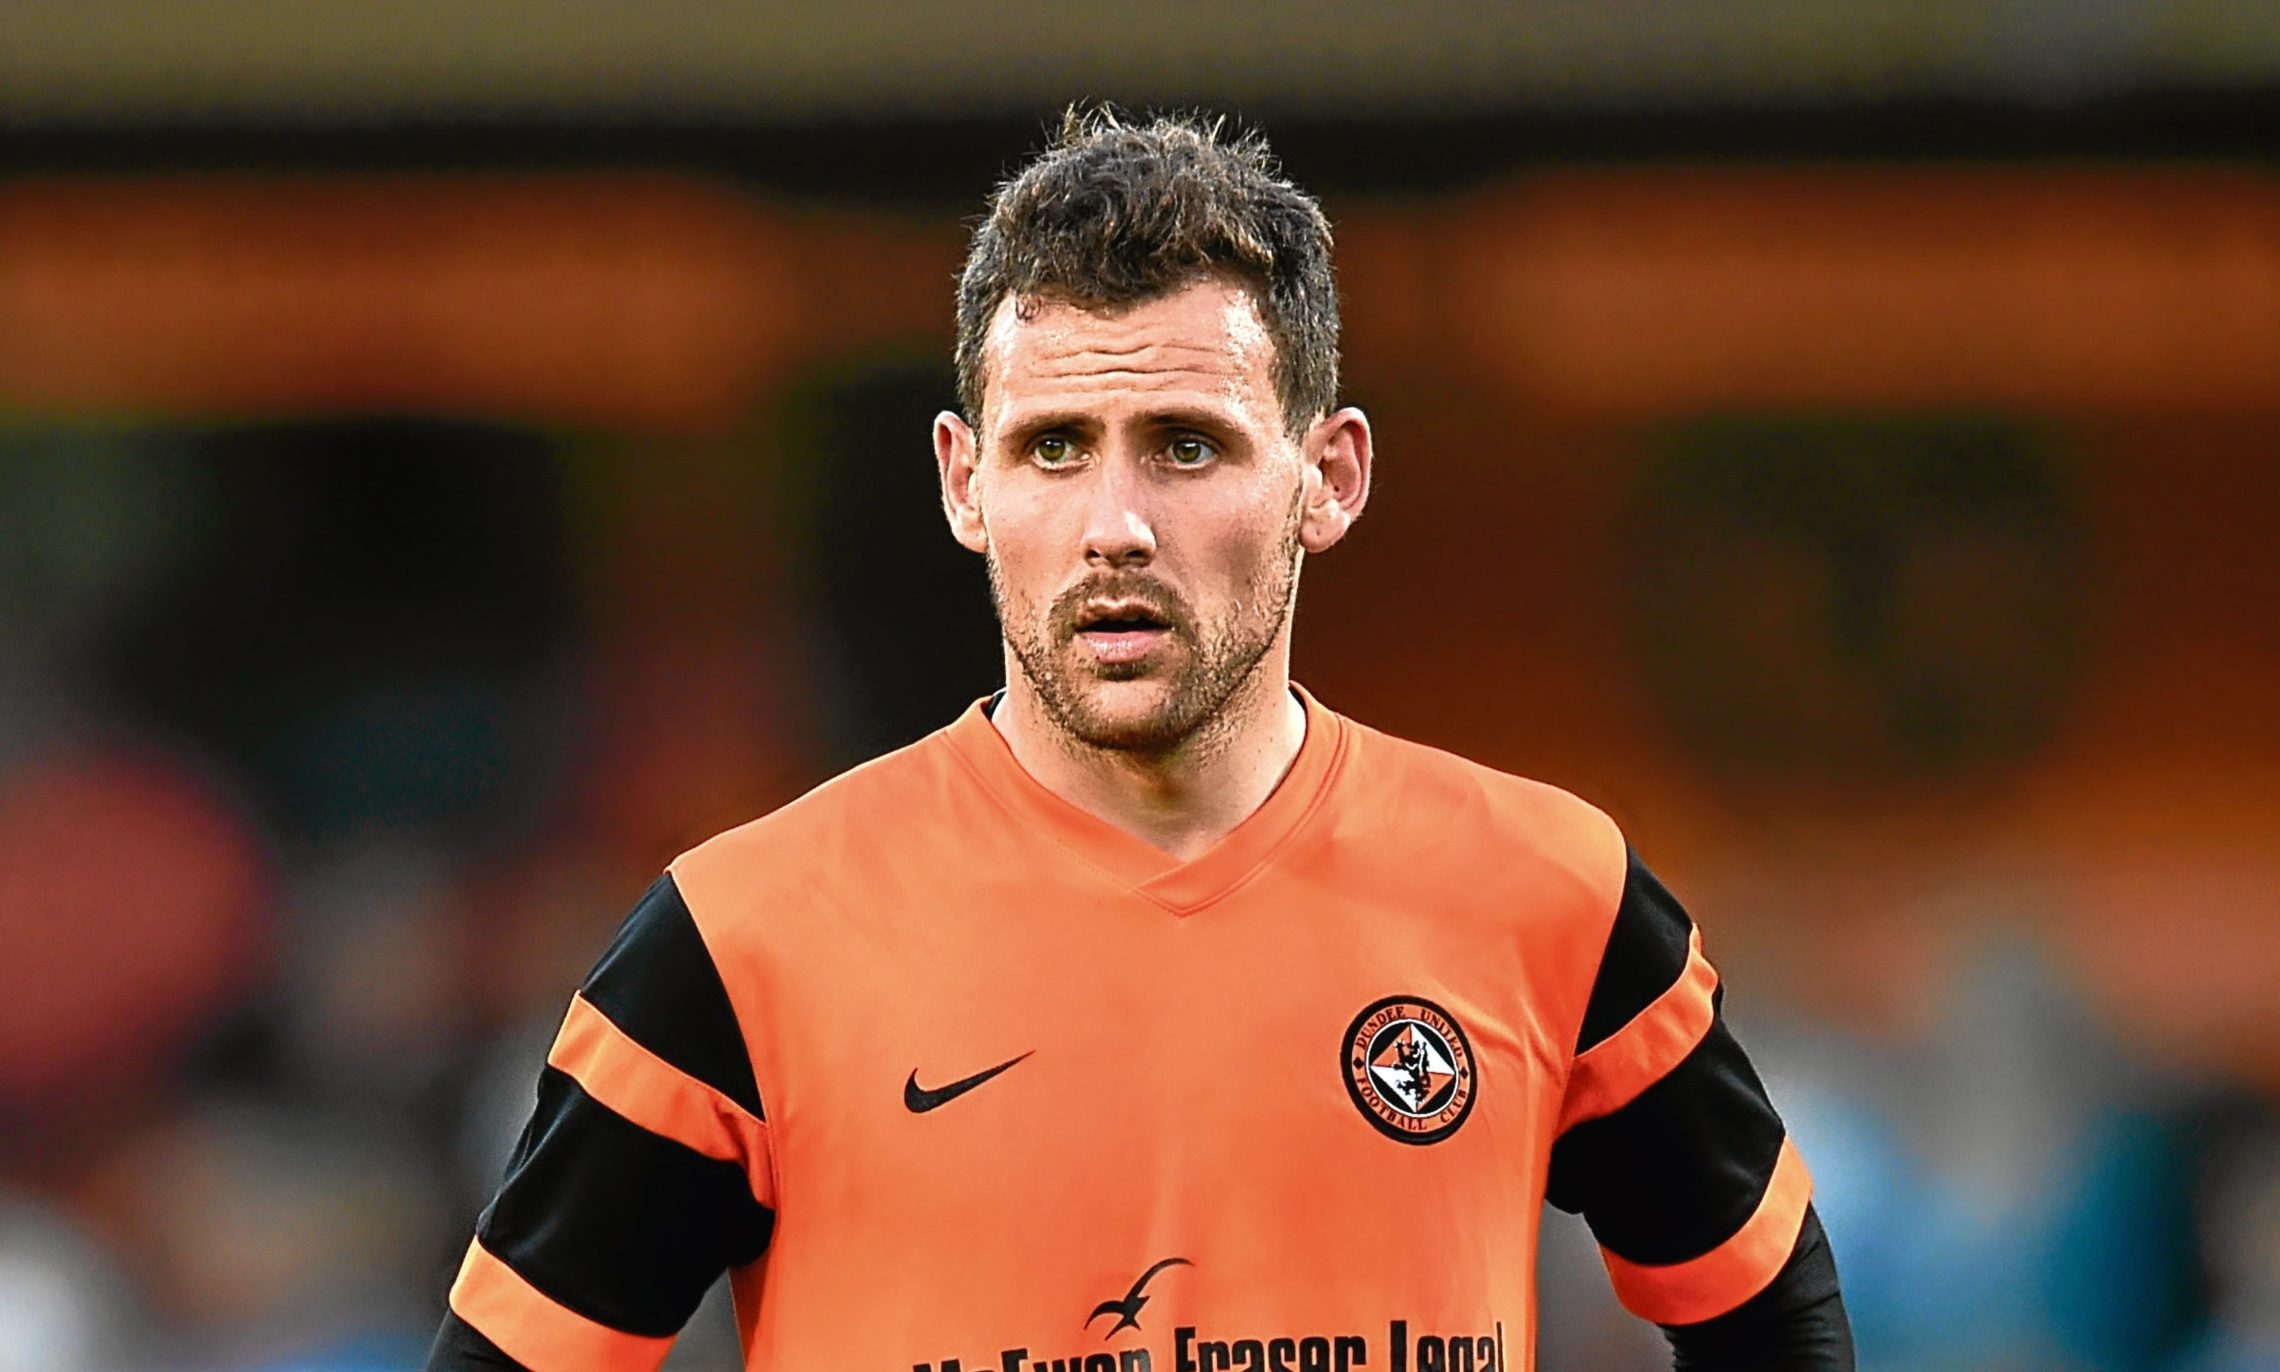 Tony Andreu has been a fan favourite this term, and backs Utd to go up next season.